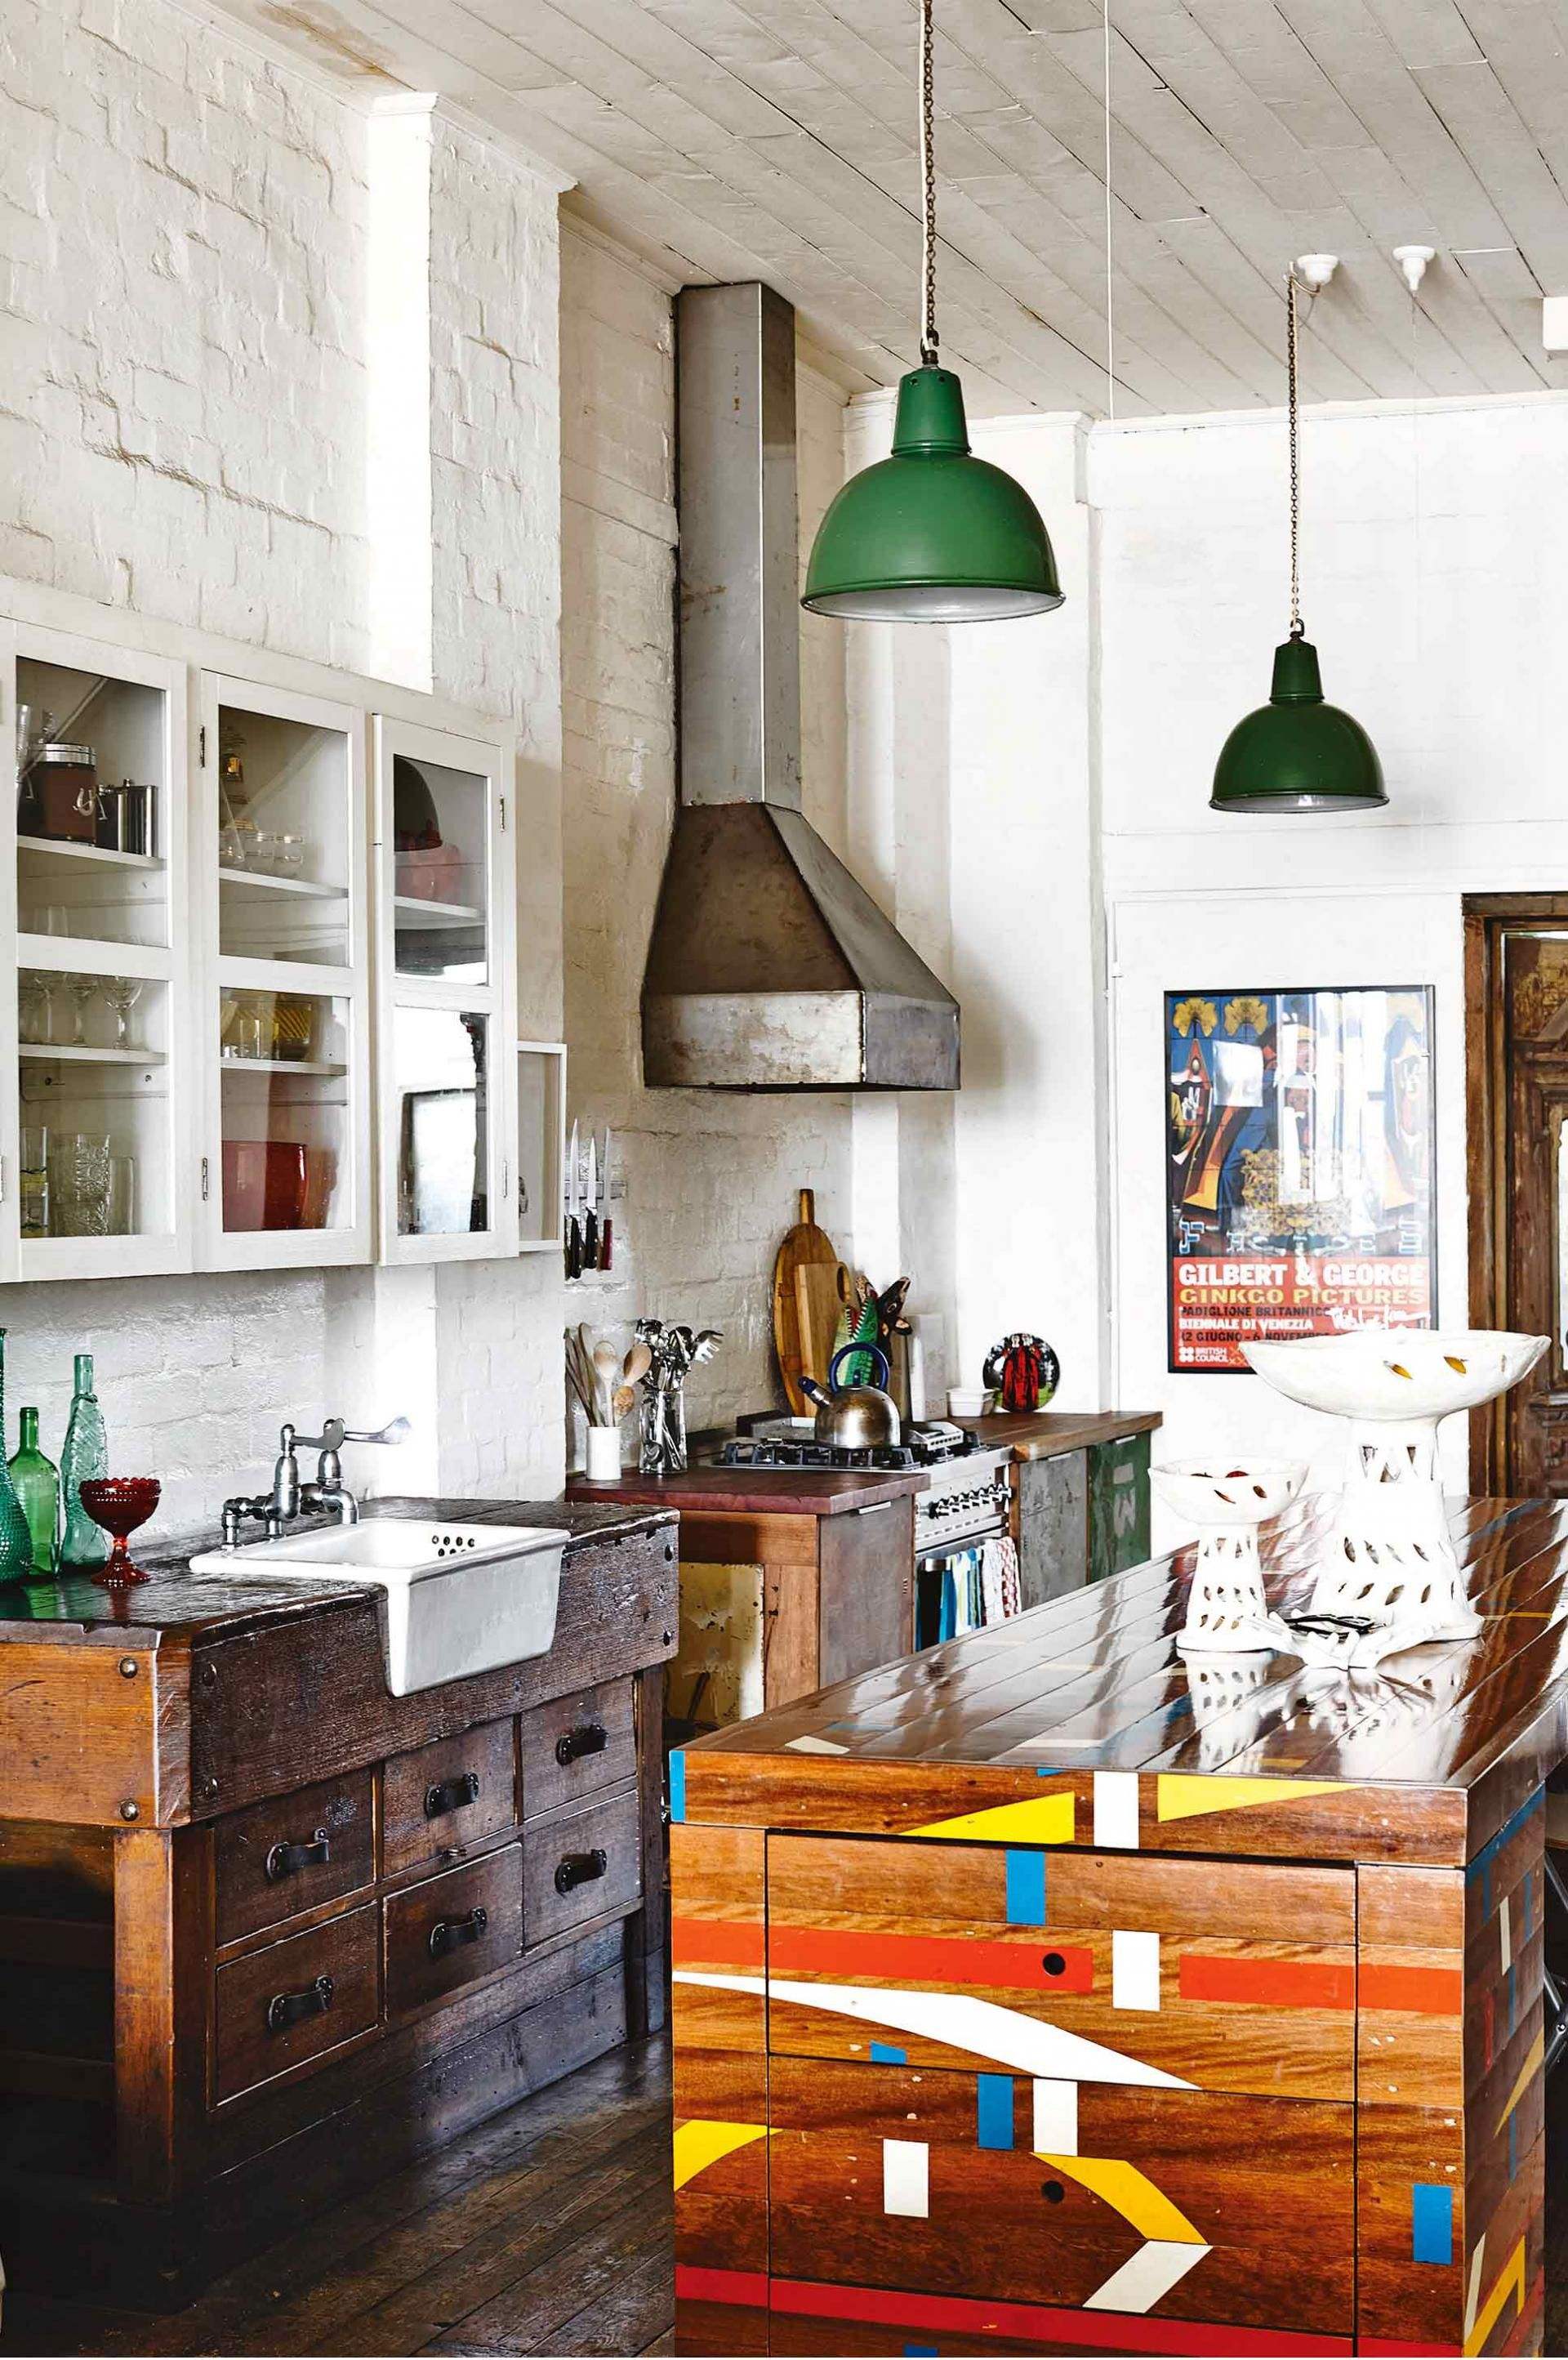 9 unique kitchen designs. Styling by Heather Nette King. Photography by Derek Swalwell.